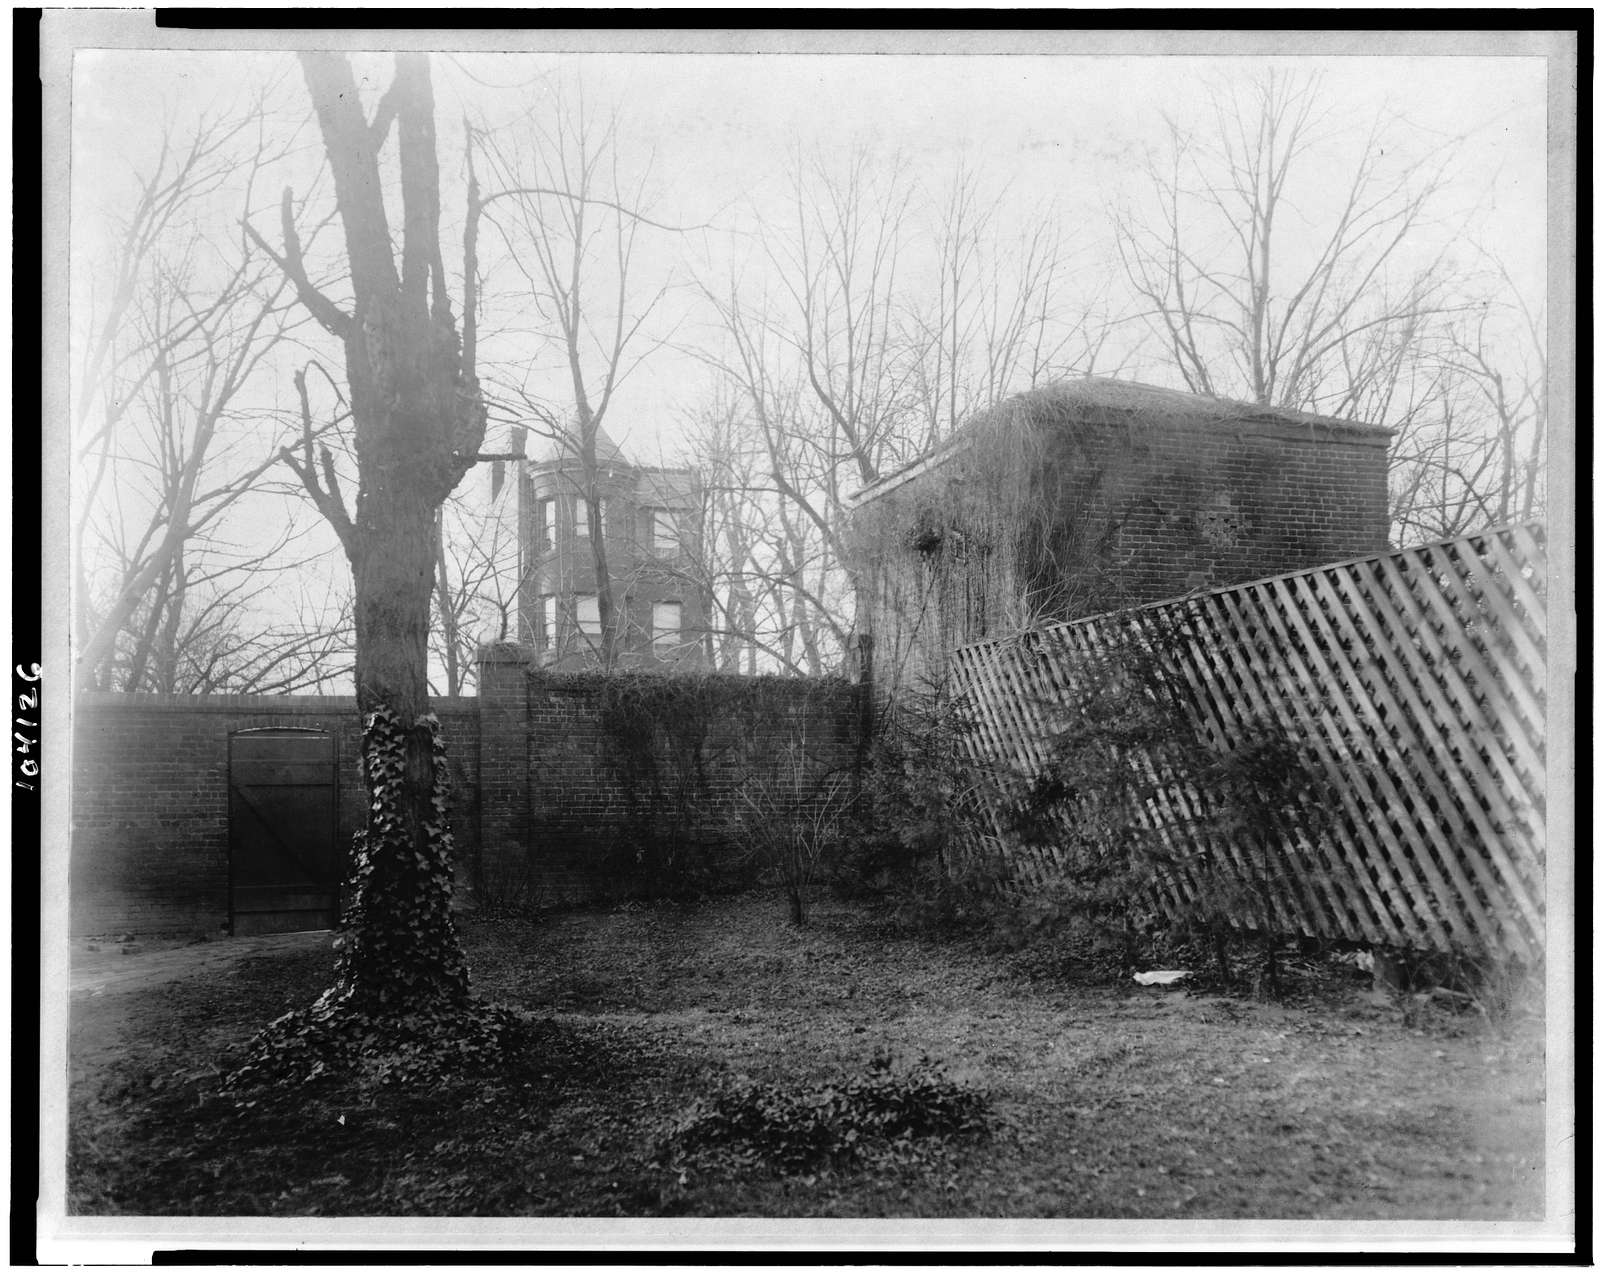 [View of stable at the Octagon House, Washington, D.C. with brick fence, trellis fence, and tree]